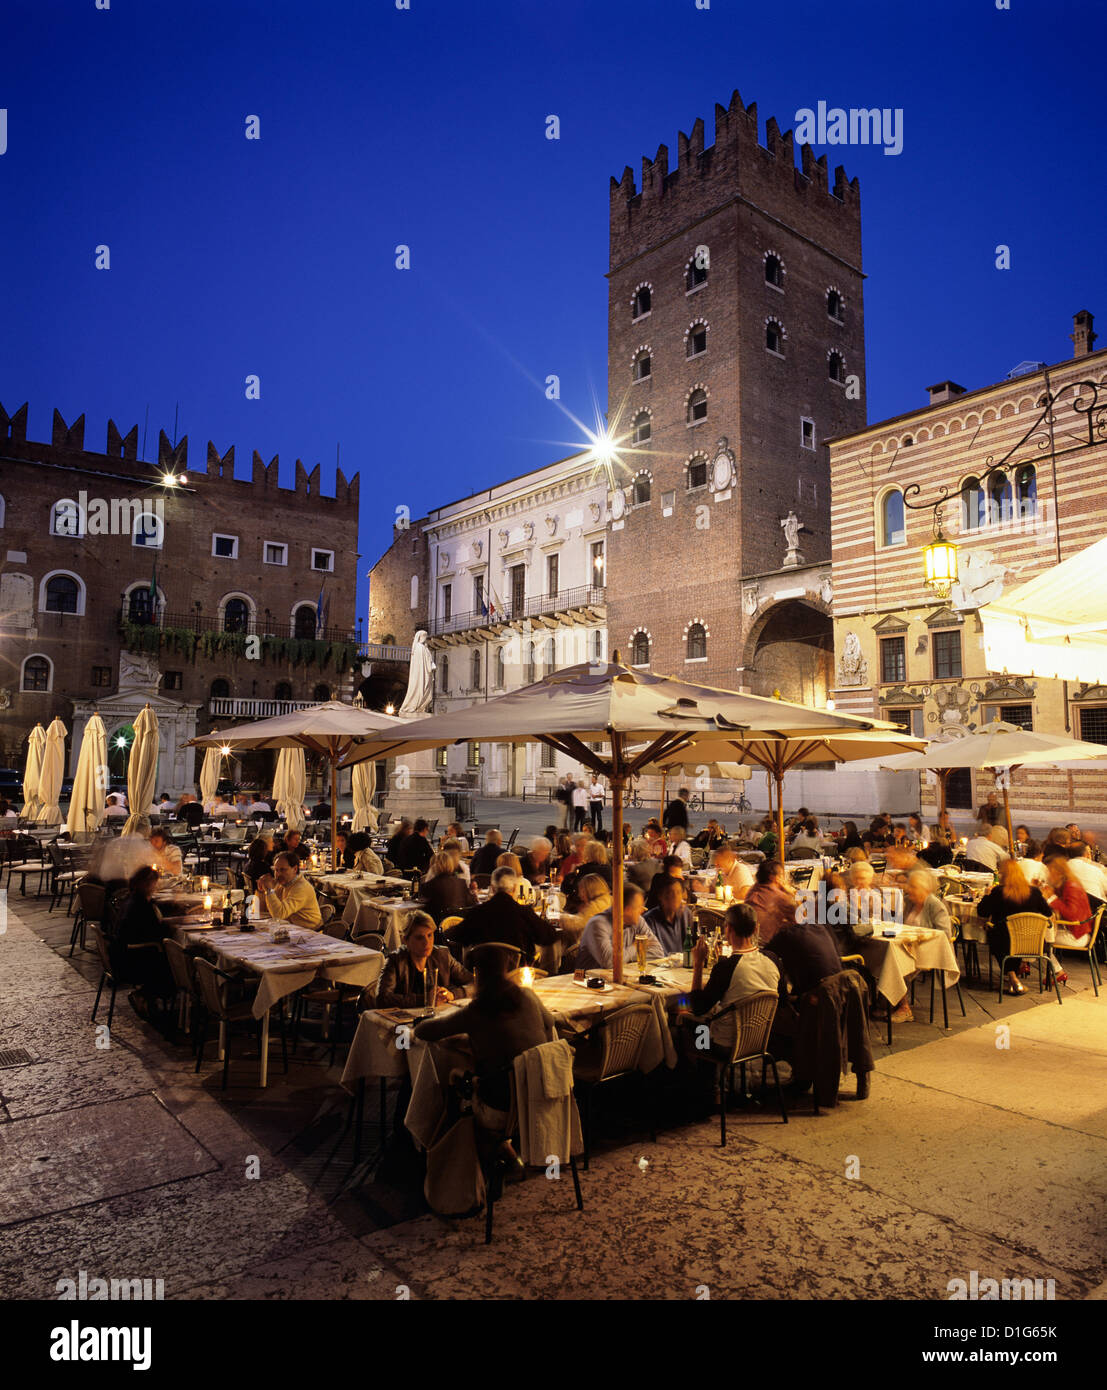 Evening dining in the old town, Verona, UNESCO World Heritage Site, Veneto, Italy, Europe Stock Photo